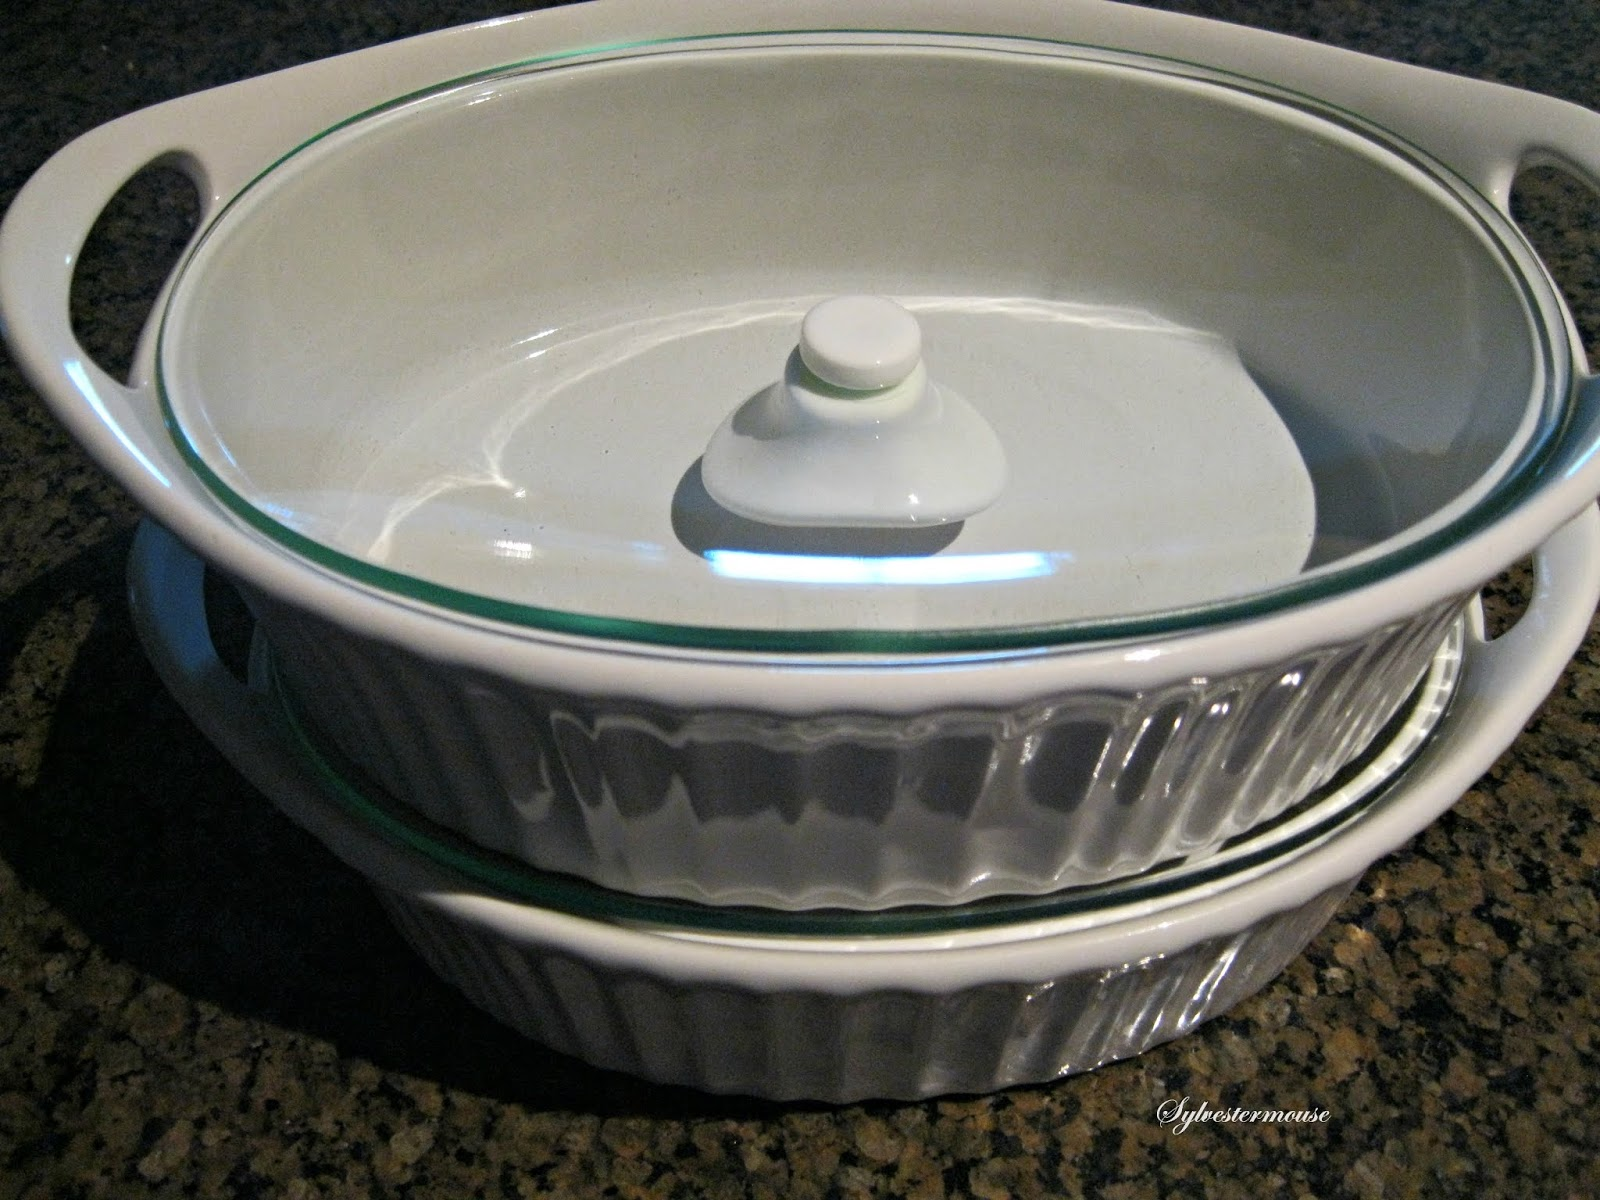 New CorningWare French White Oval Casserole with Glass Lid Review